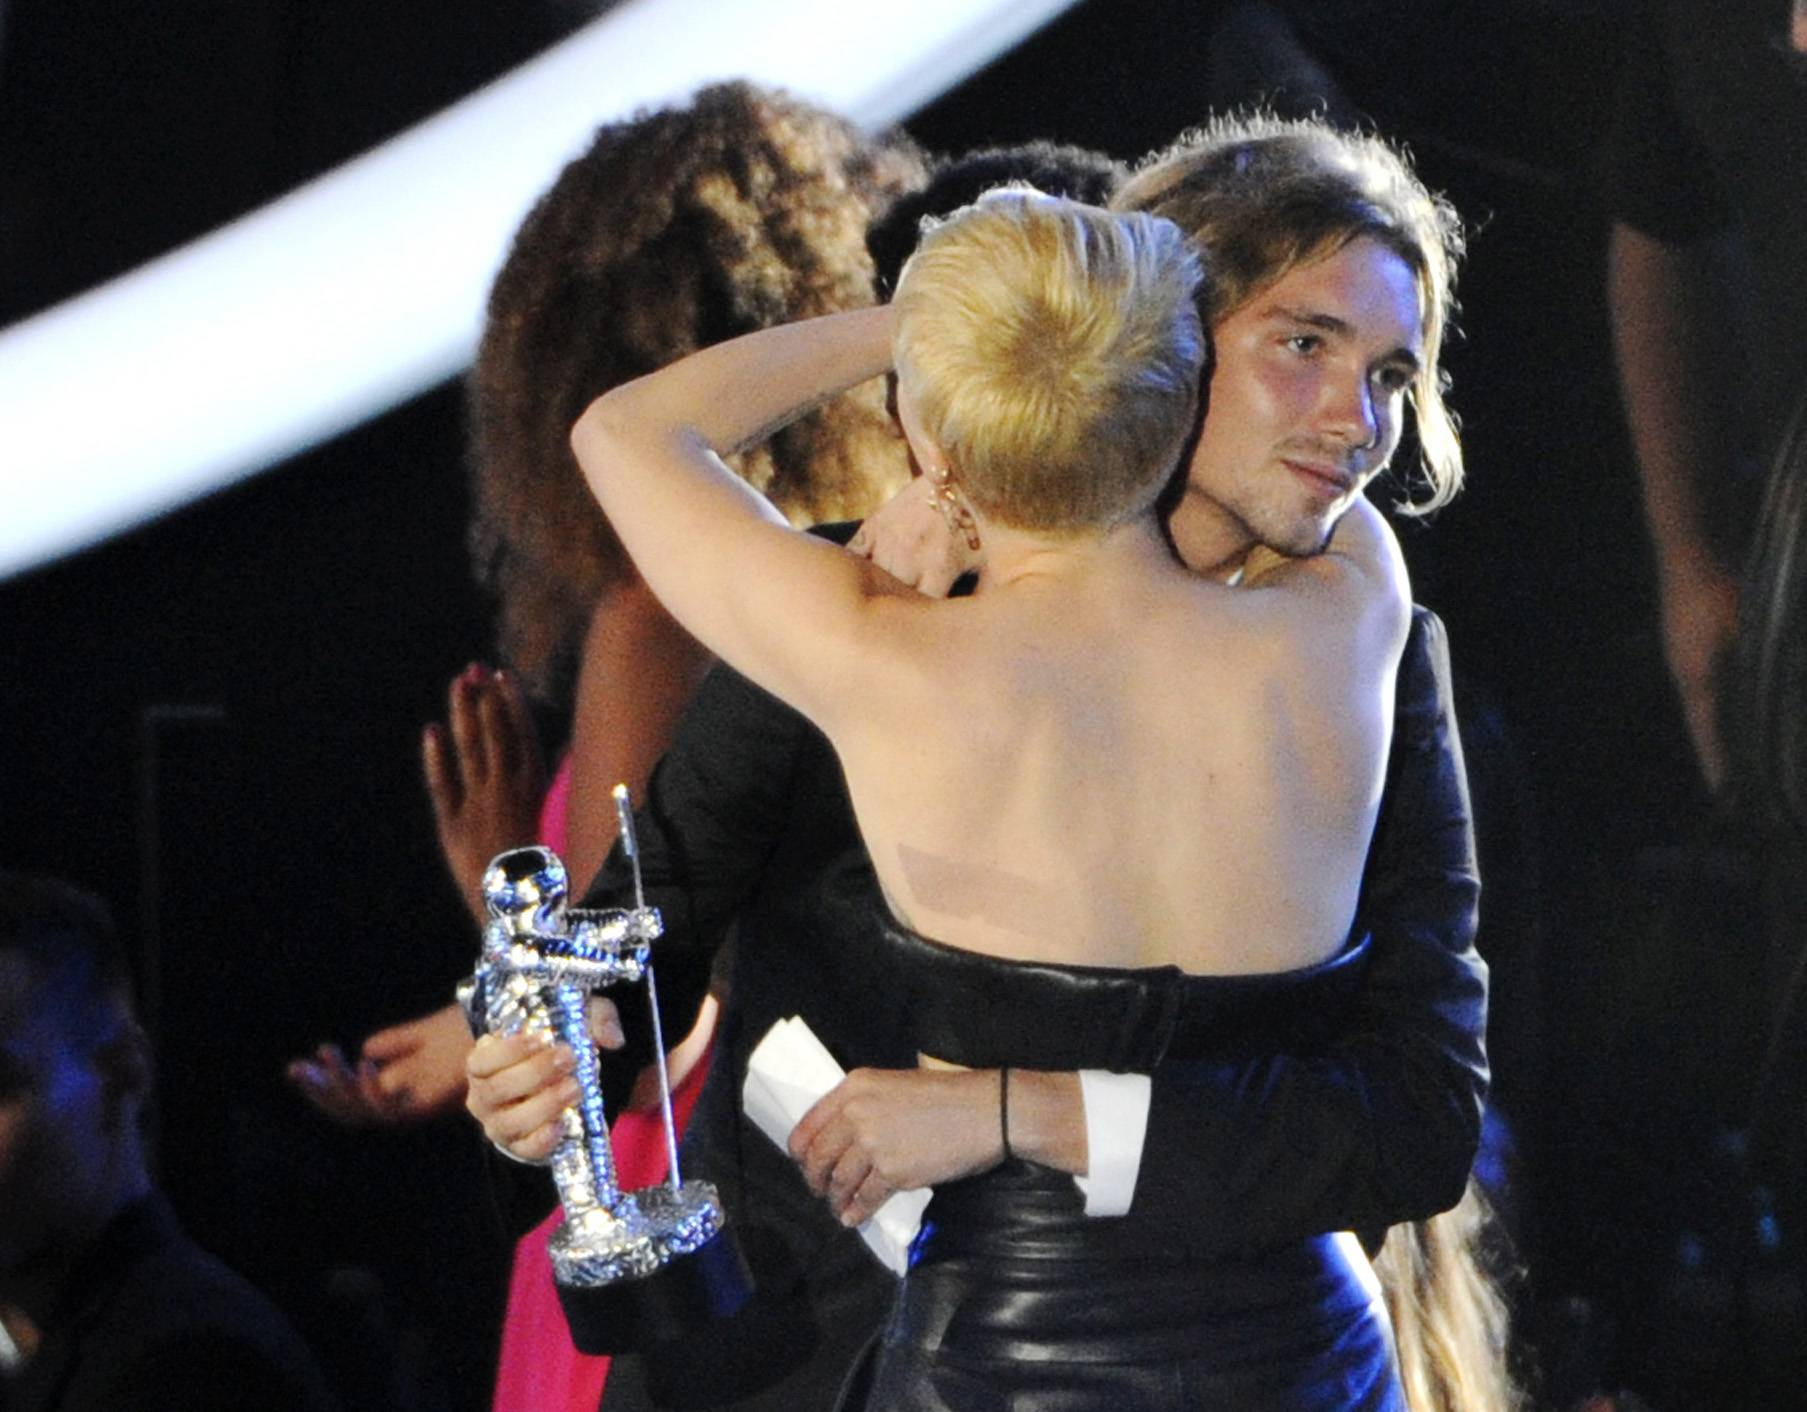 Miley Cyrus hugs Jesse Helt, right, at the MTV Video Music Awards Sunday. The young homeless man who accompanied Cyrus to the awards show gained worldwide attention when Cyrus let him accept her award for video of the year.